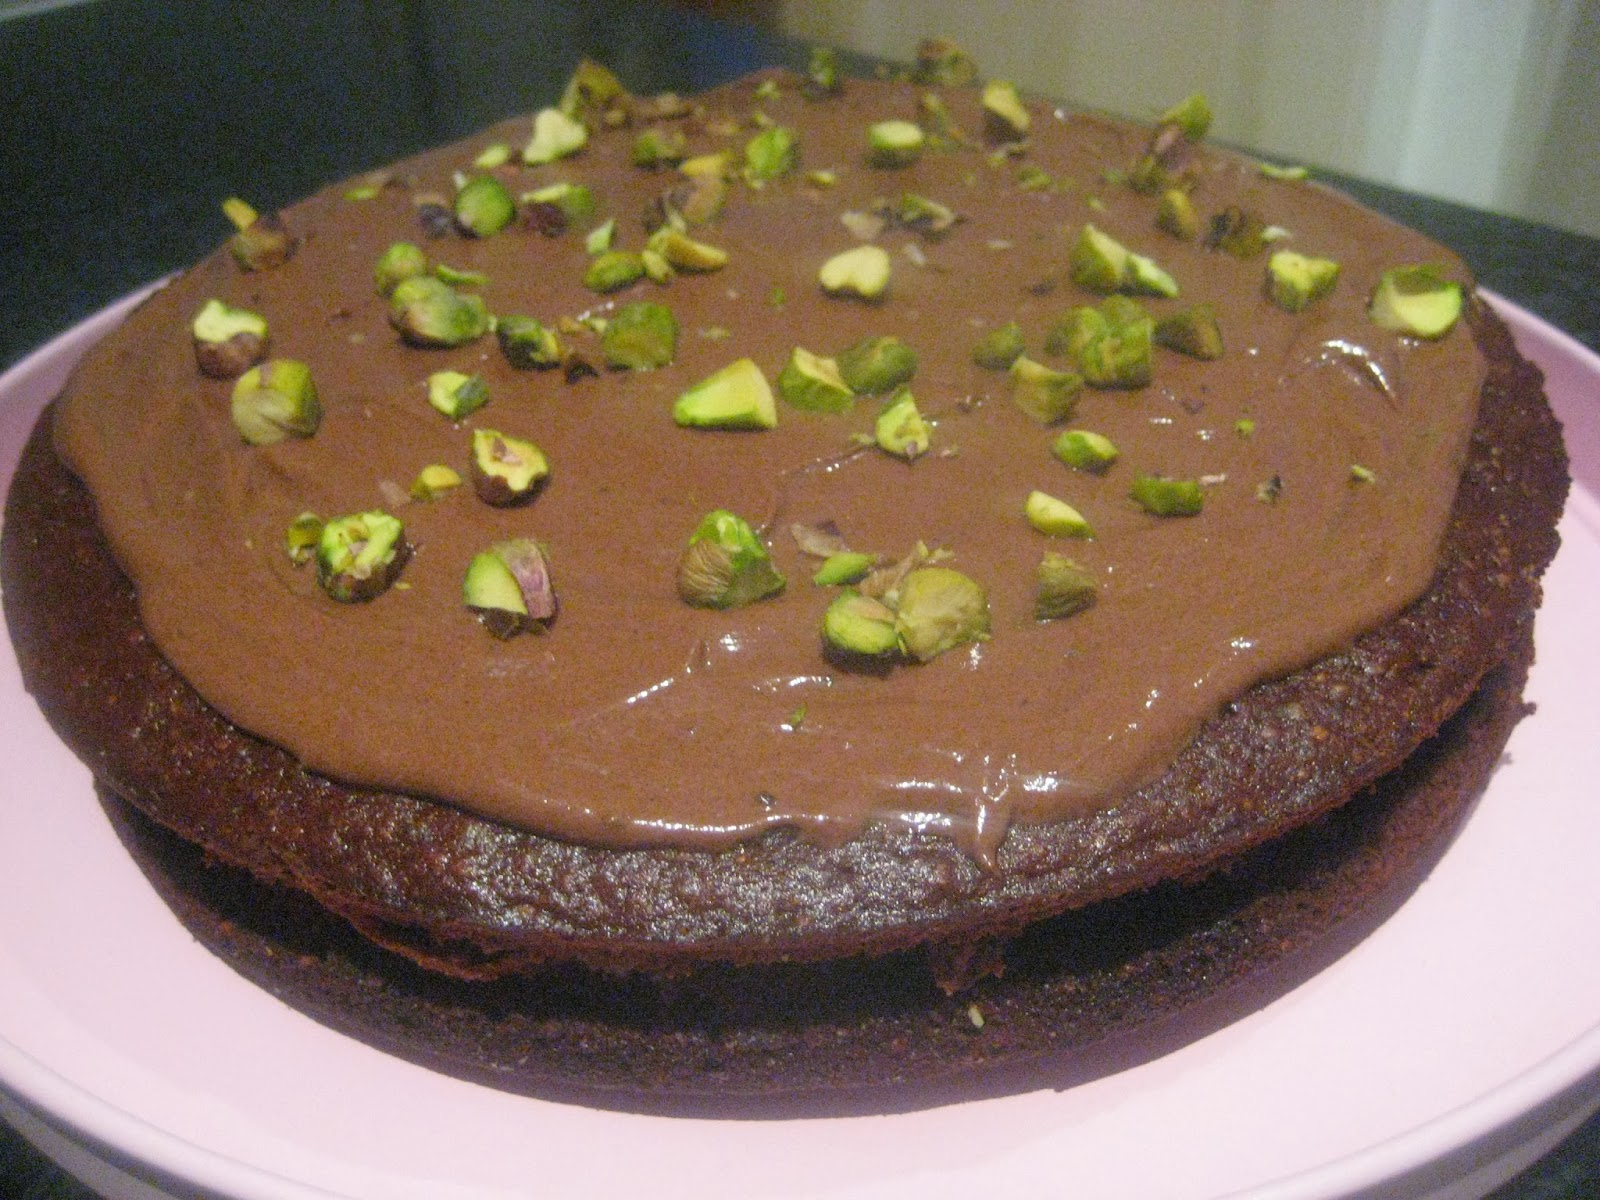 Let them eat cake!: Chocolate, courgette and pistachio cake